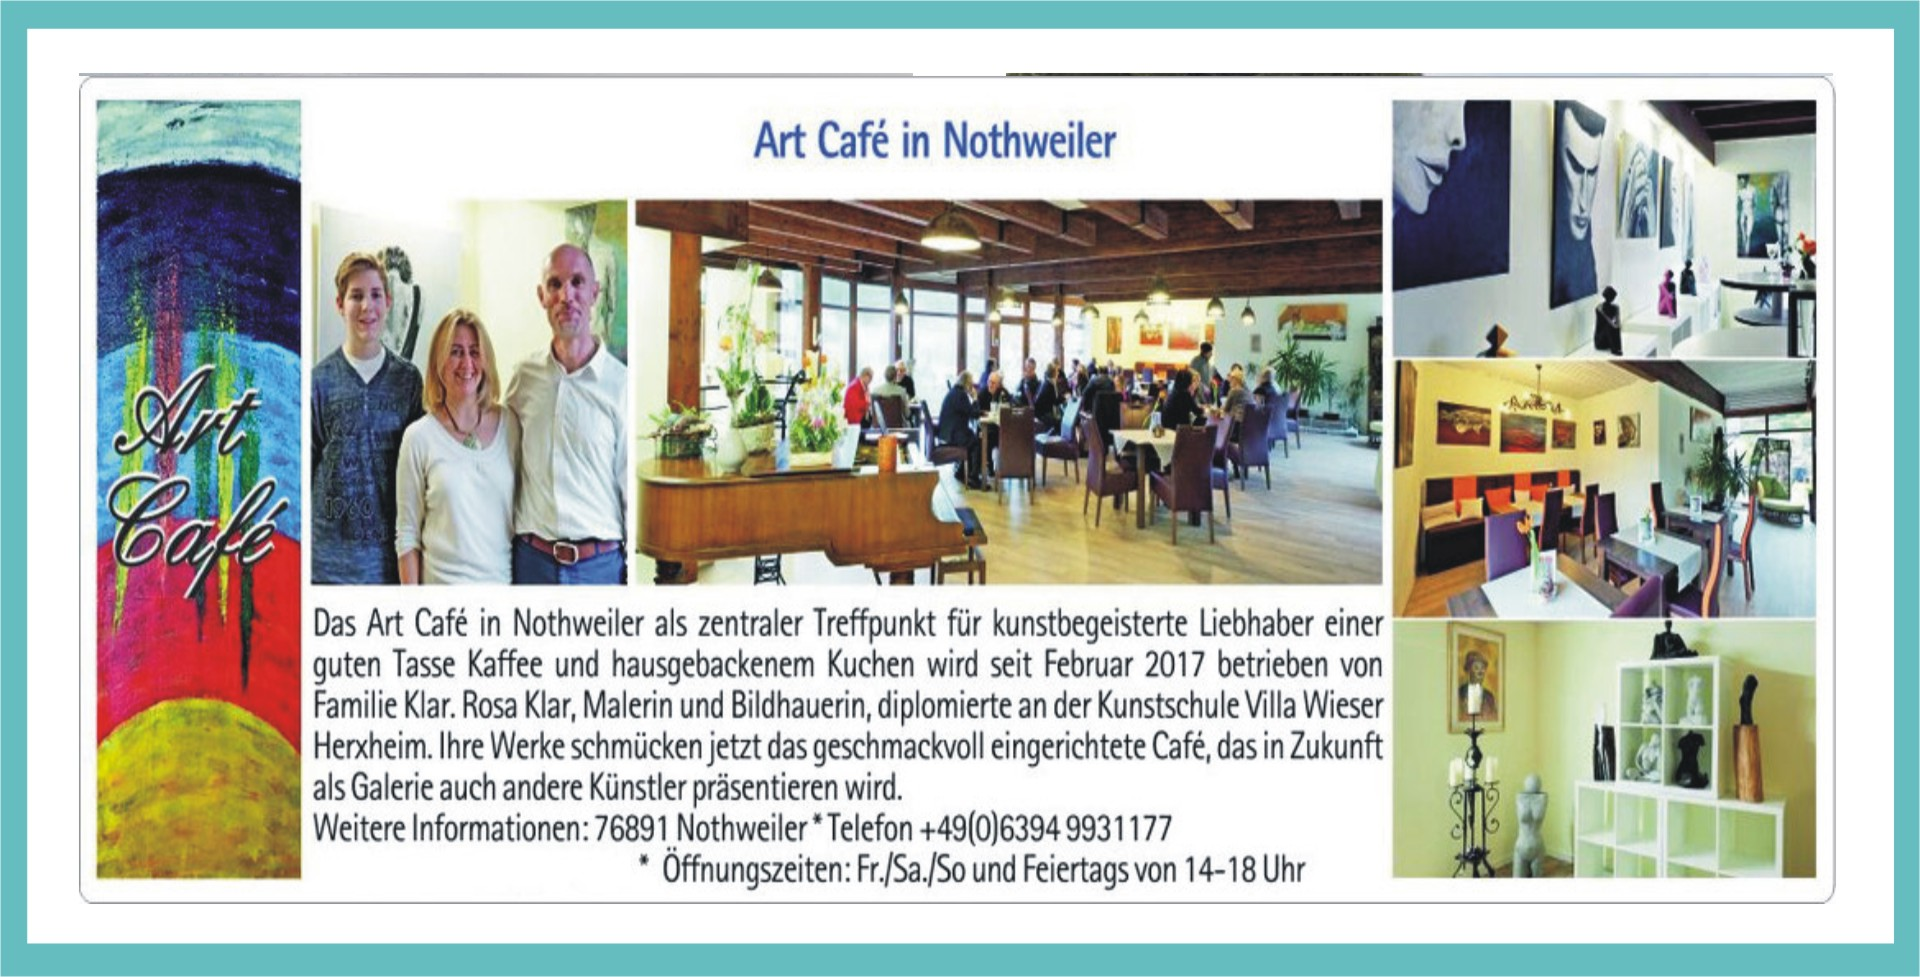 Art Cafe Nothweiler